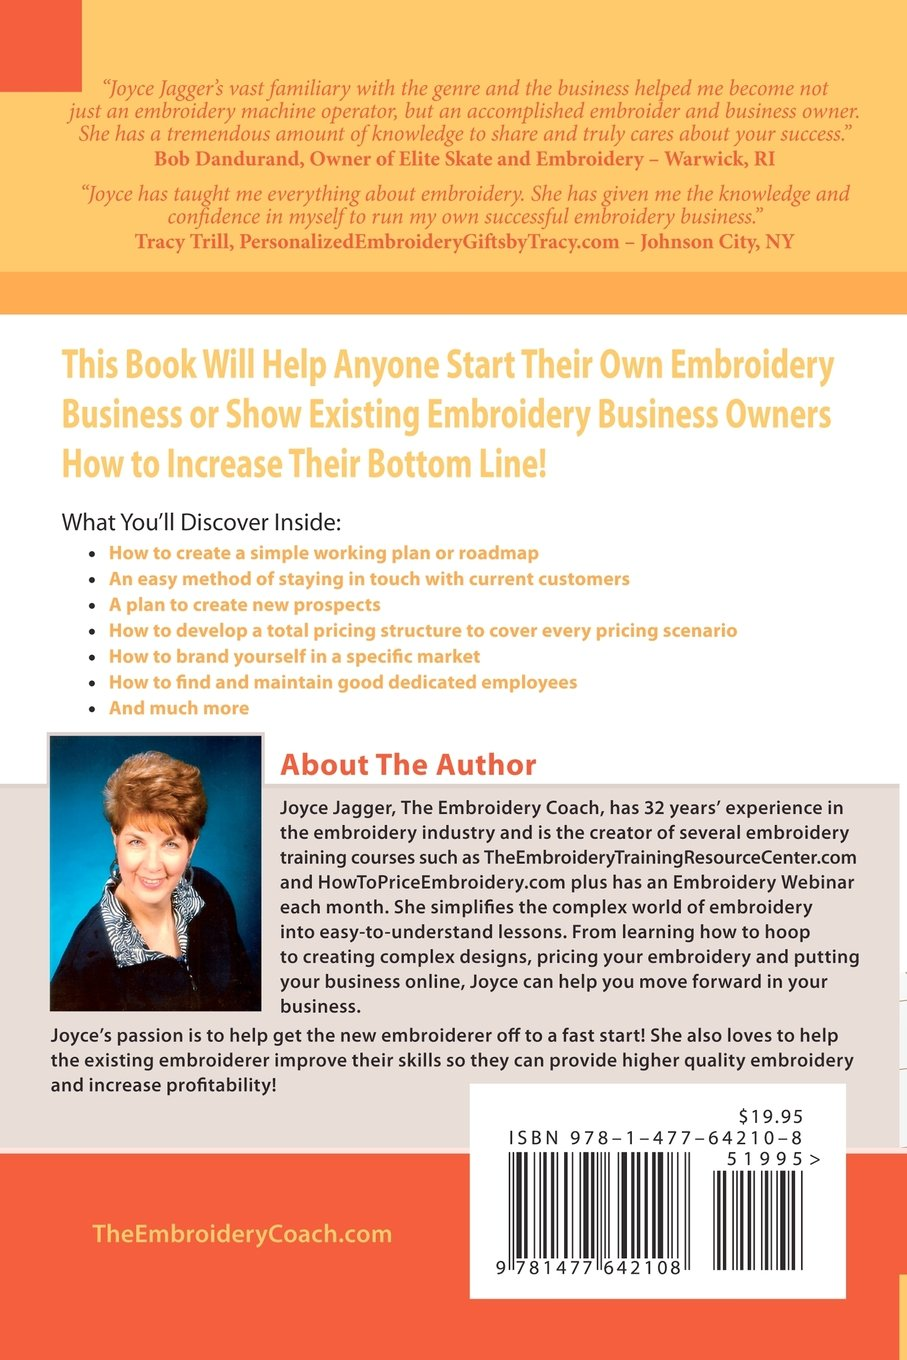 The Truth About Embroidery Business Success: 7 Elements To A Highly  Profitable Homebased Embroidery Business: Joyce Jagger: 9781477642108:  Amazon: